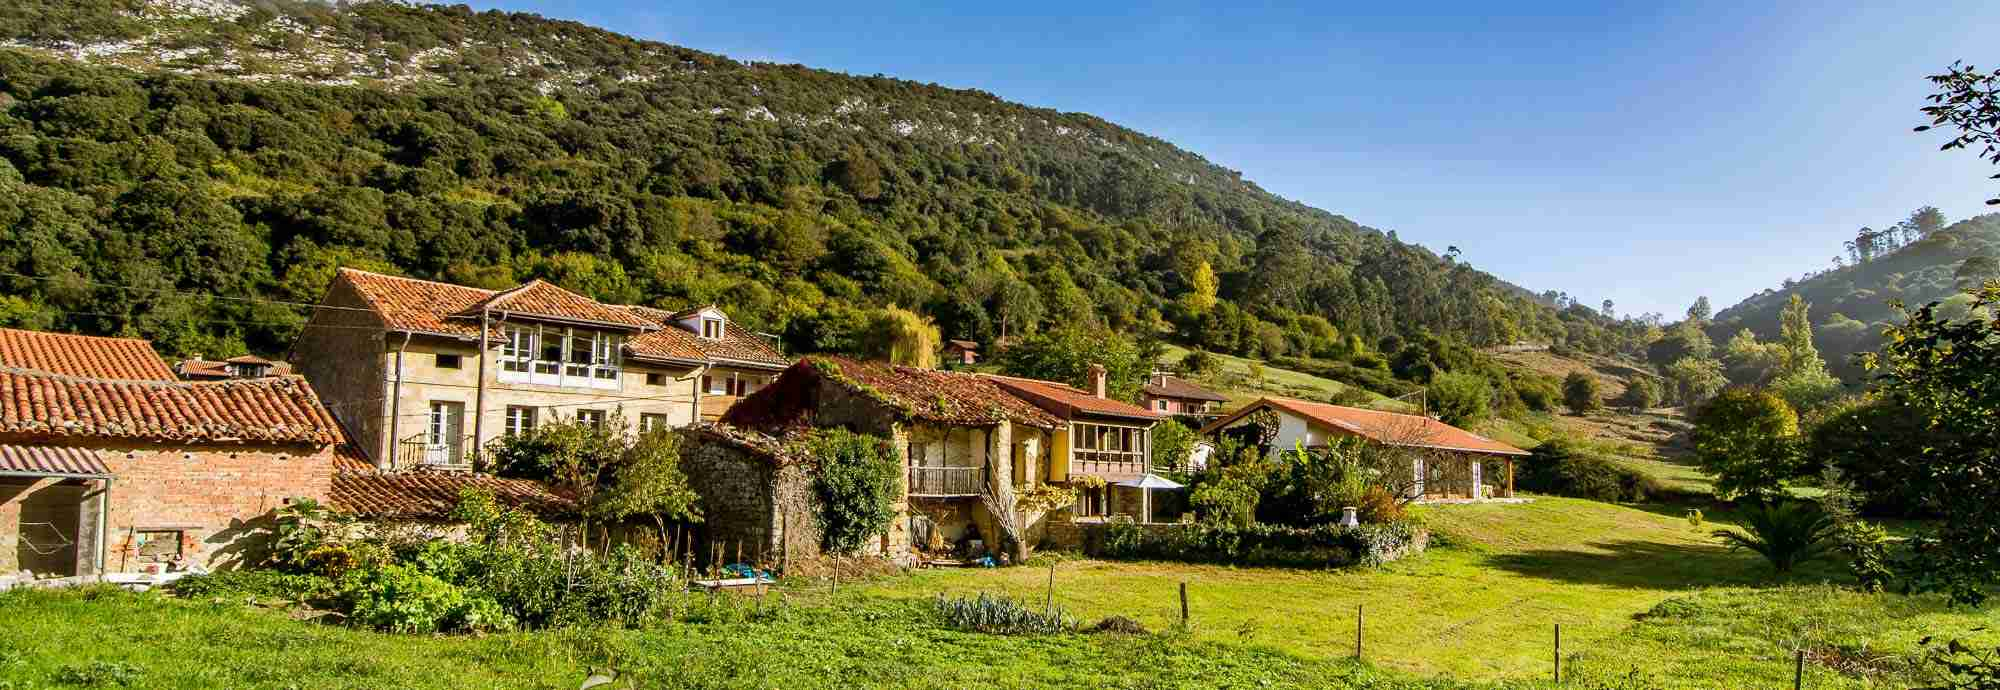 Holiday  Villas in Northern Spain near the beach